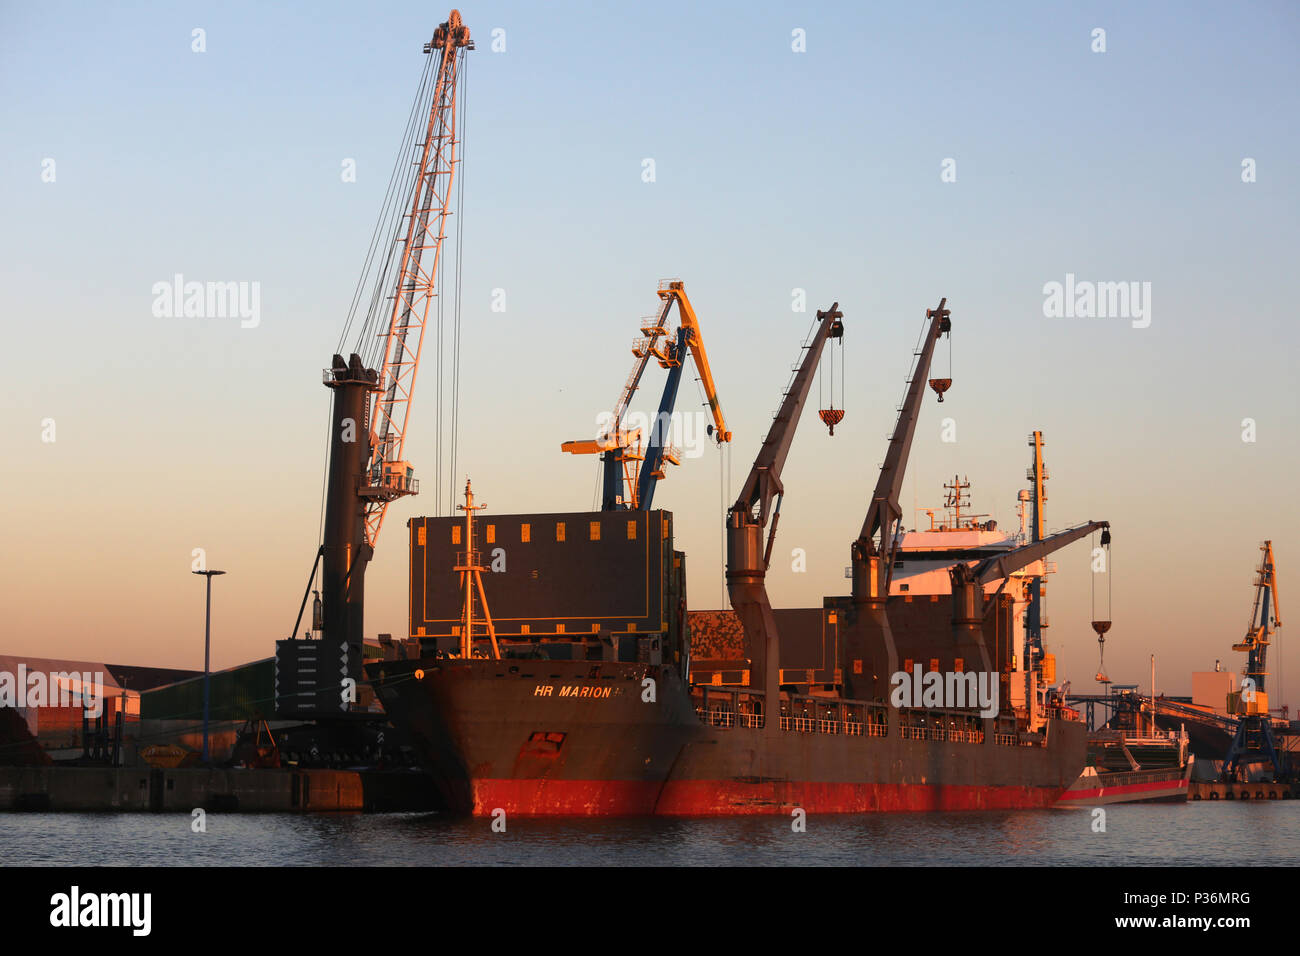 Wismar, Germany, empty cargo ship in the harbor - Stock Image